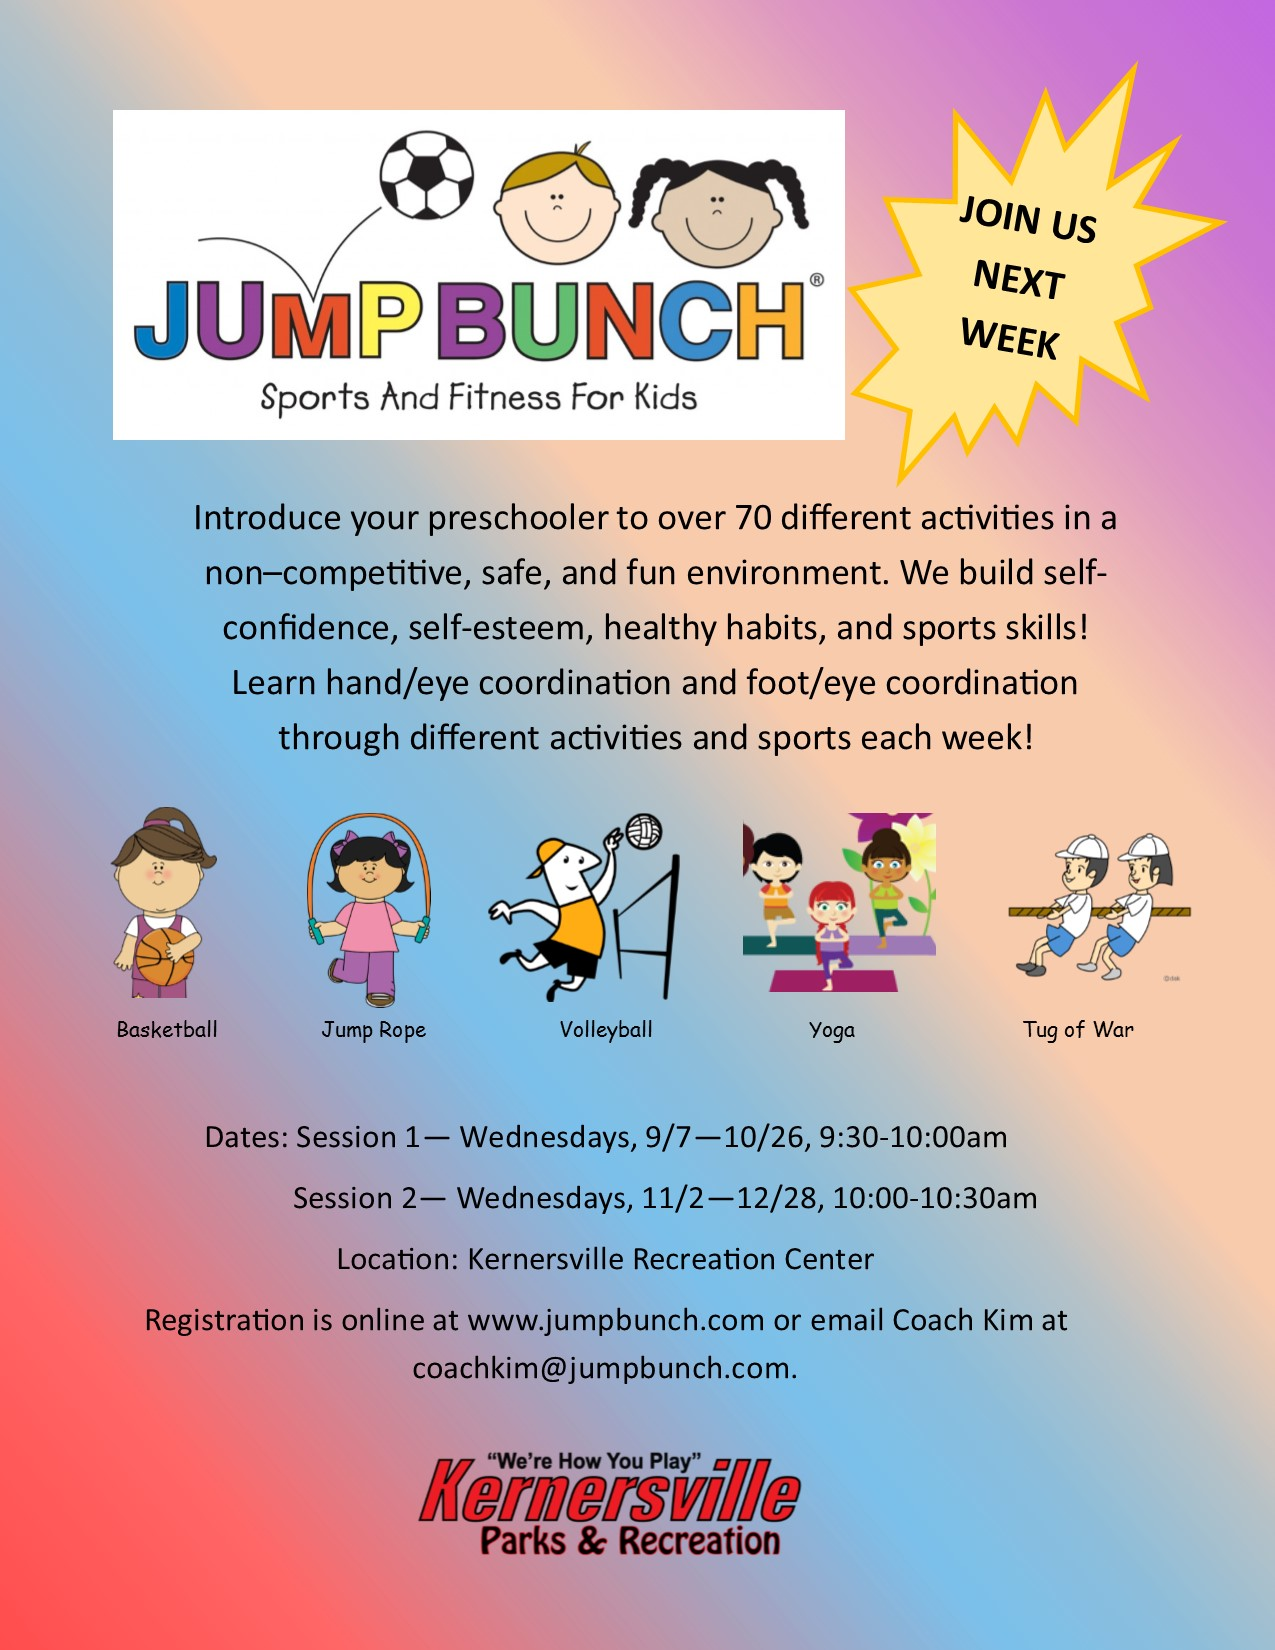 Jump Bunch Sport & Fitness for Kids